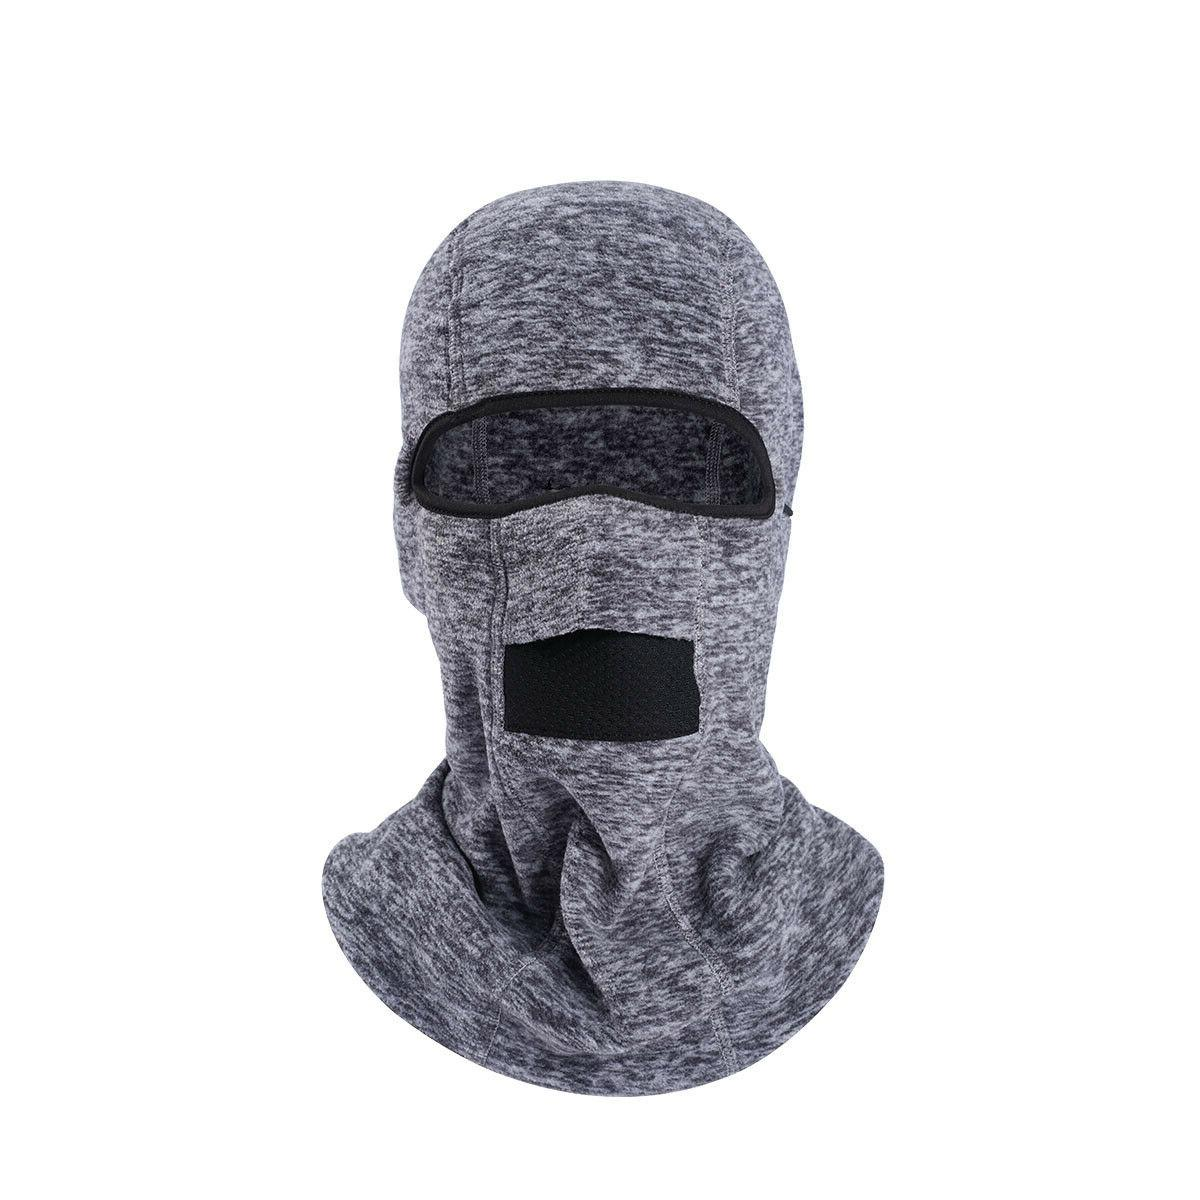 Balaclava Outdoor Sports Winter Thermal